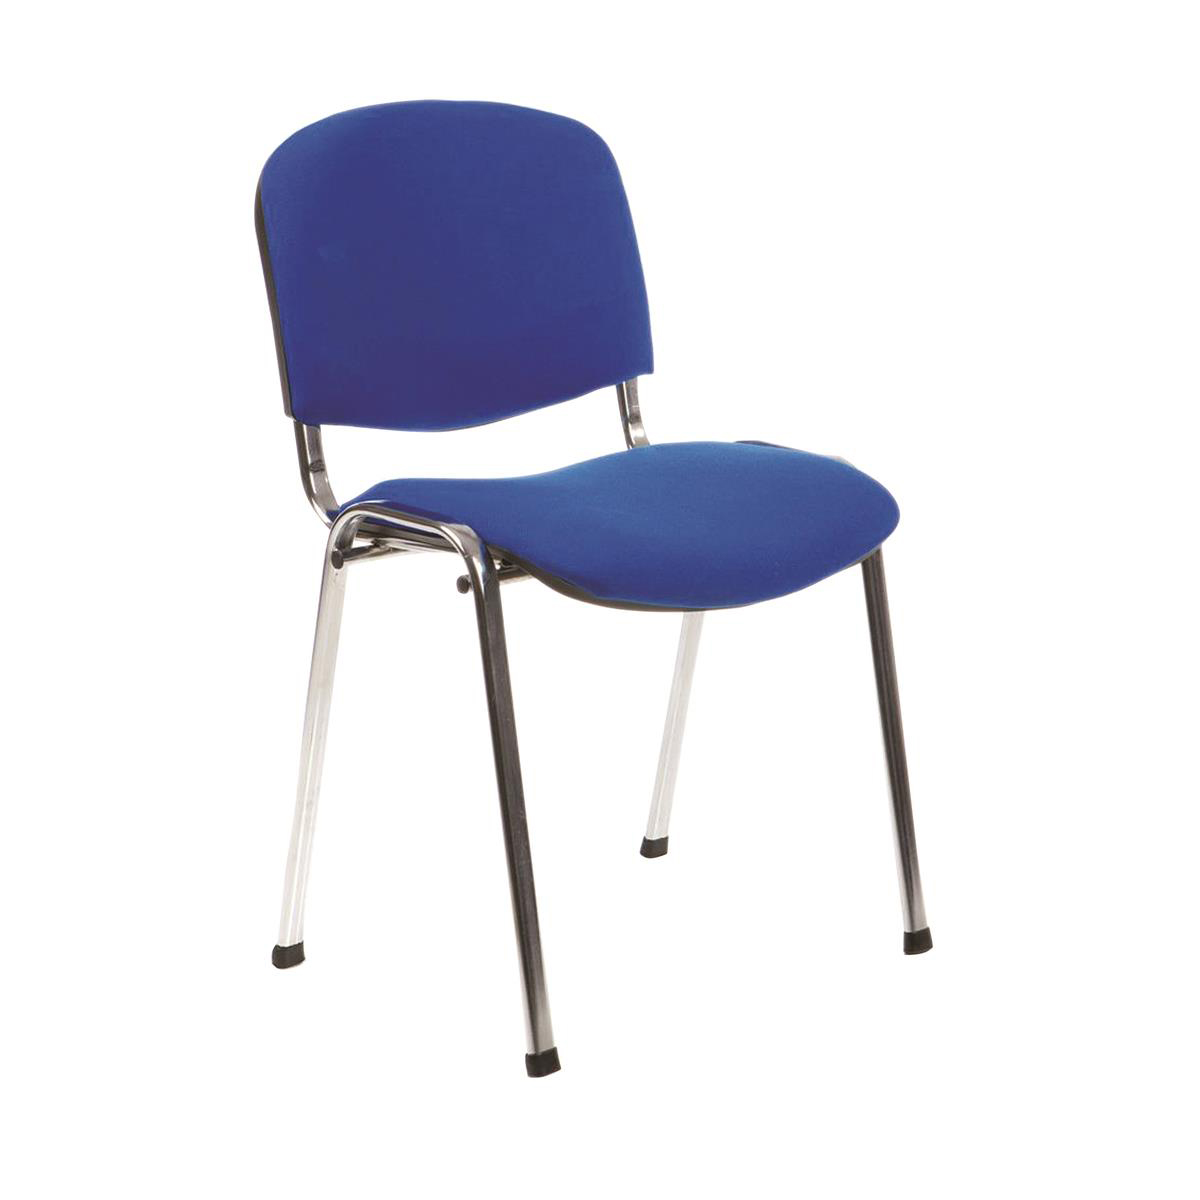 Trexus Stacking Chair Chrome Frame Blue 480x420x500mm Ref BR000068